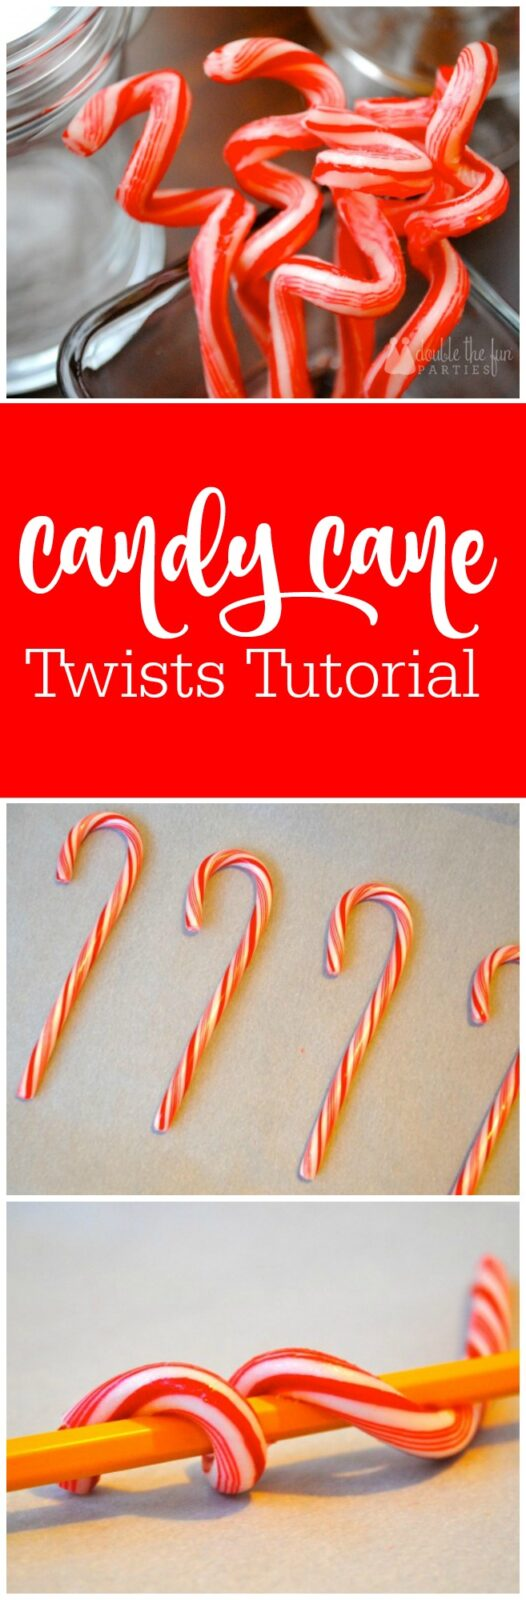 Candy Cane Twists Tutorial by The Party Teacher